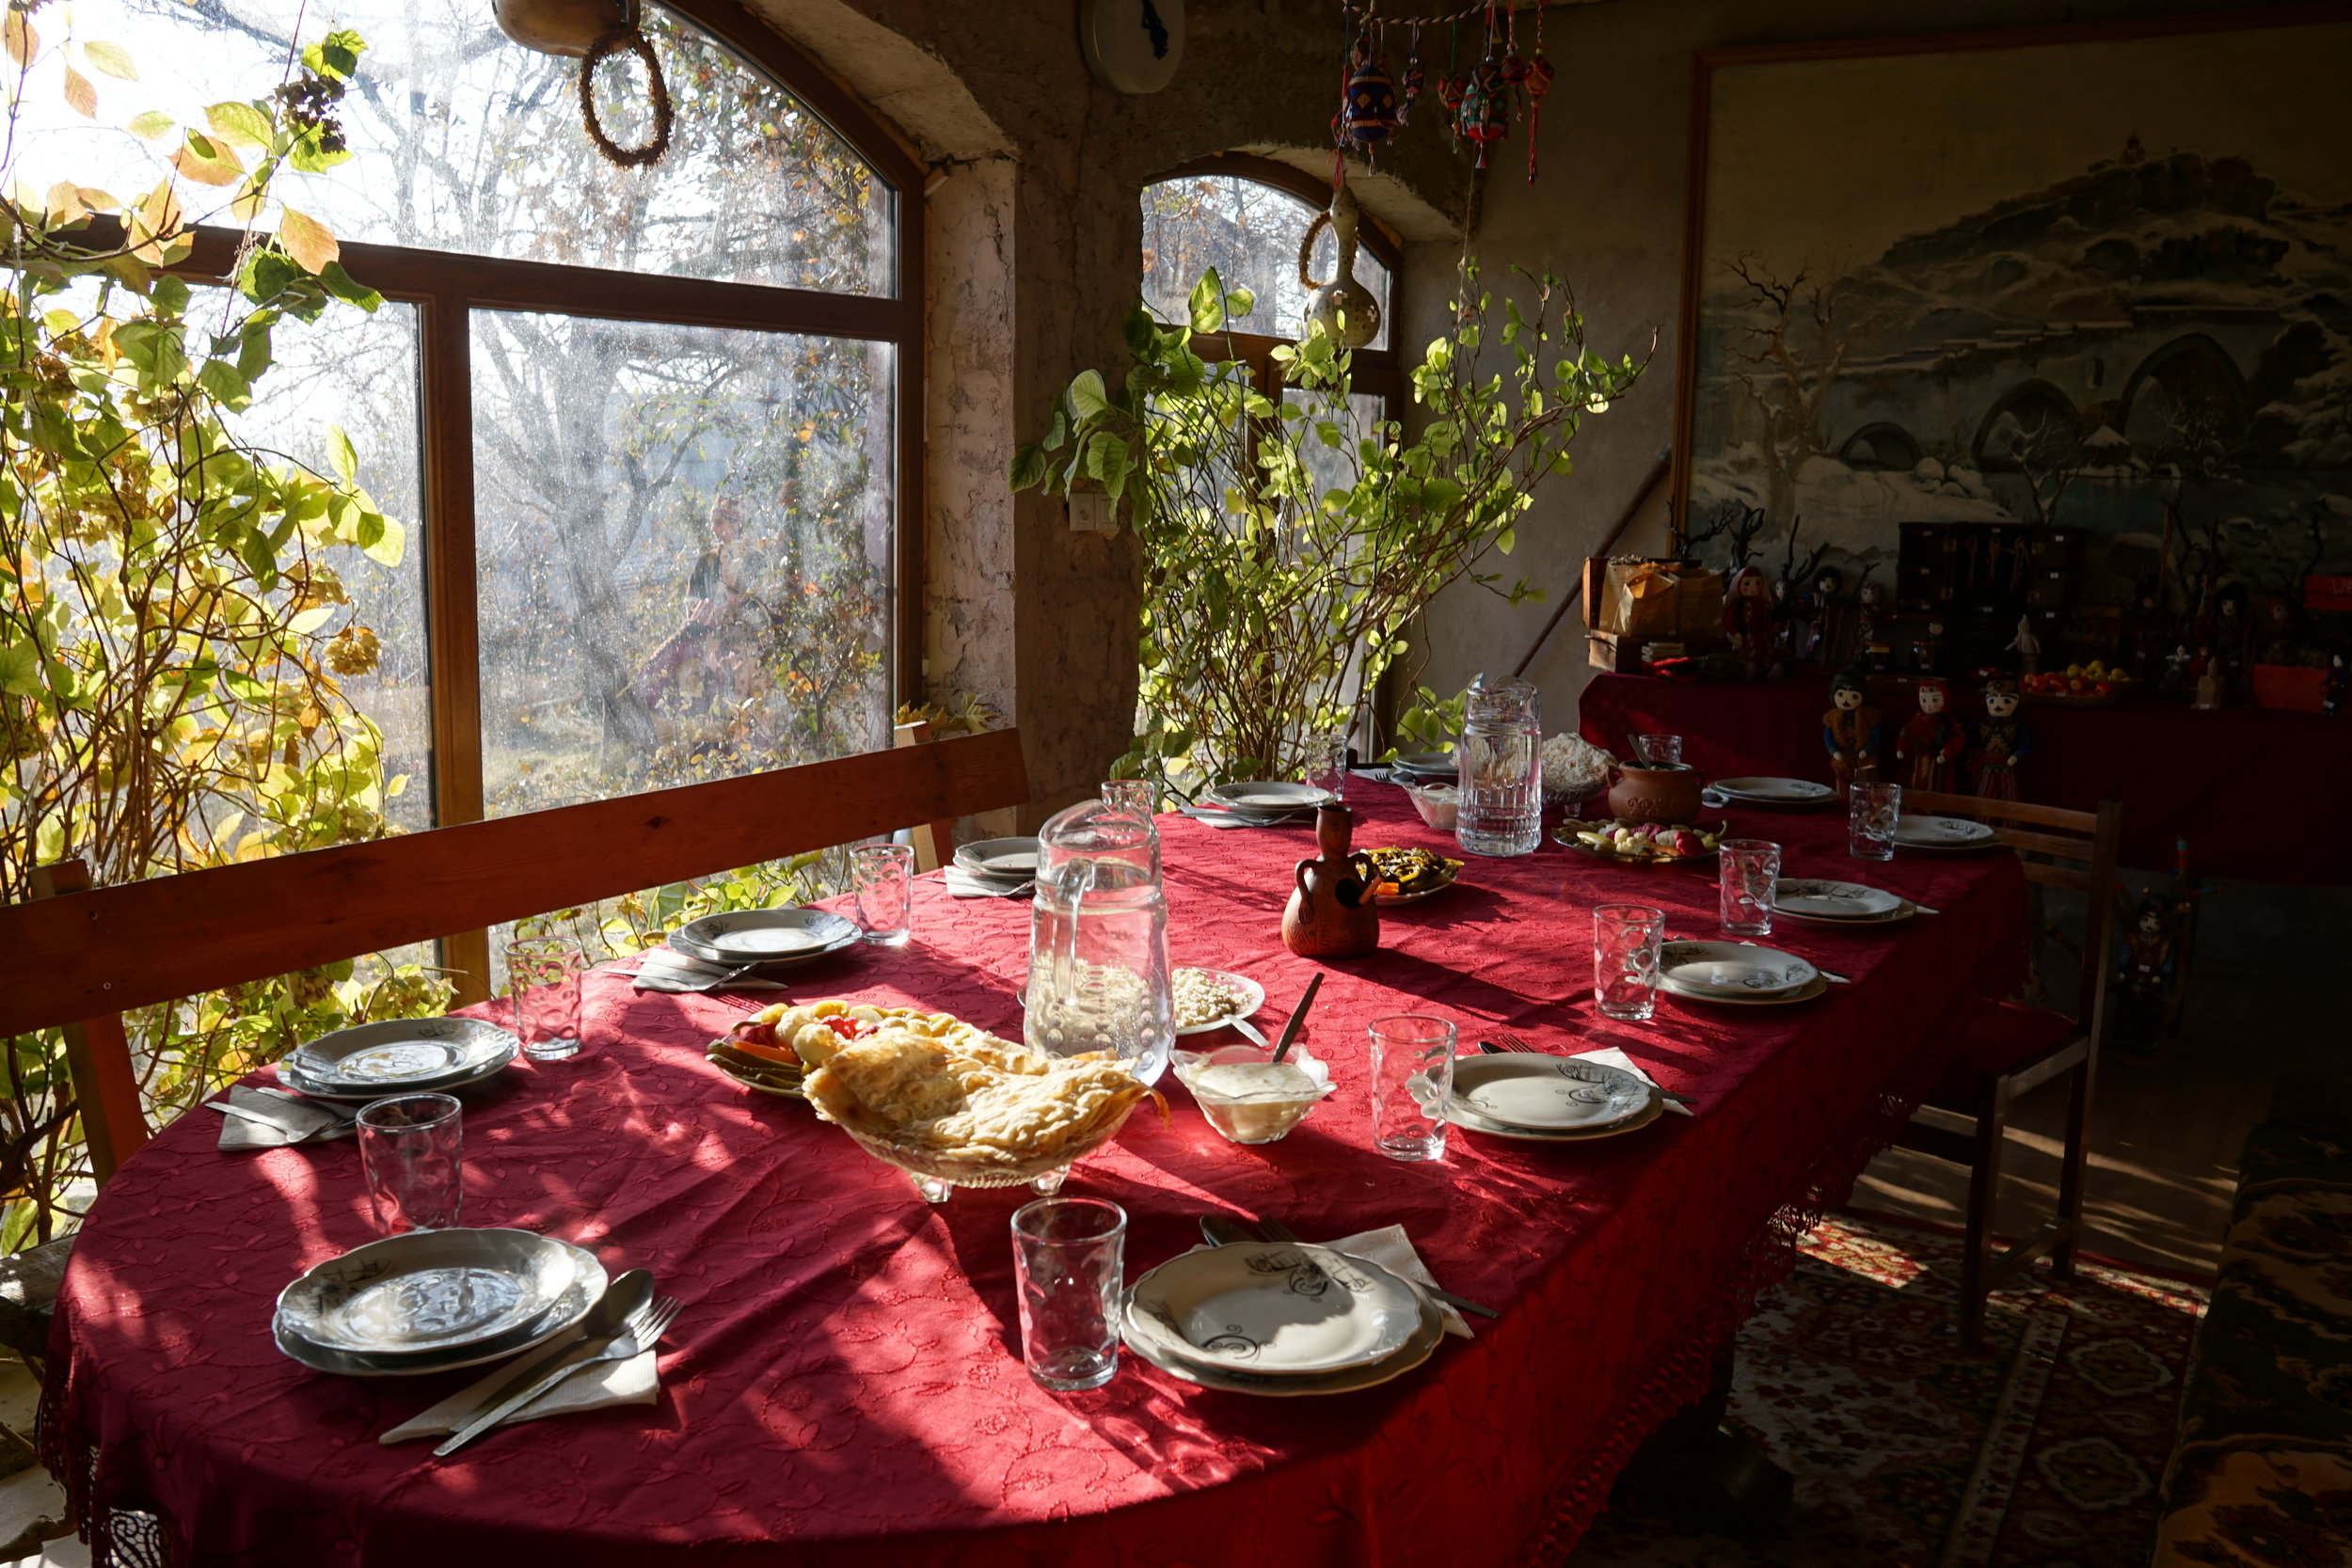 Feasting in Armenia cultural village, perhaps the best places to travel in January or December